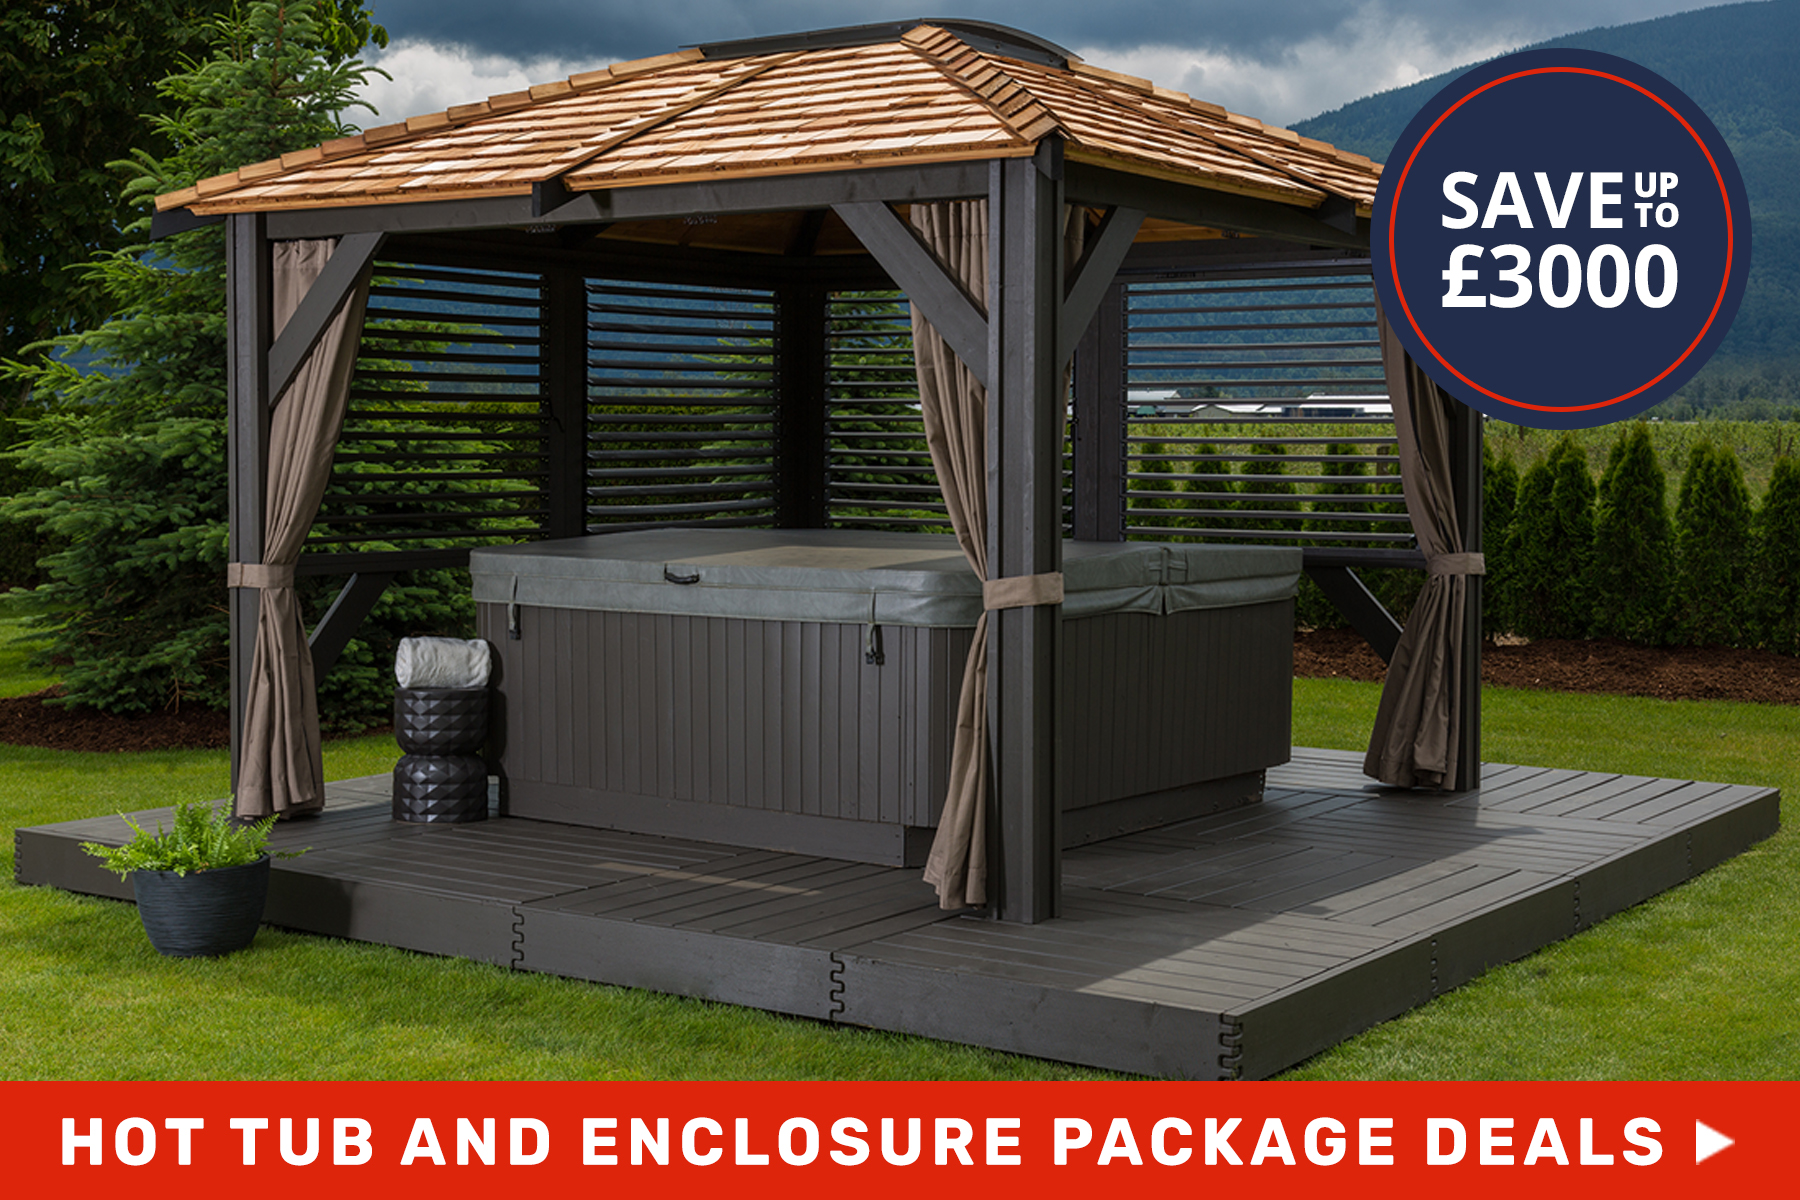 hot tub and enclosure package deals